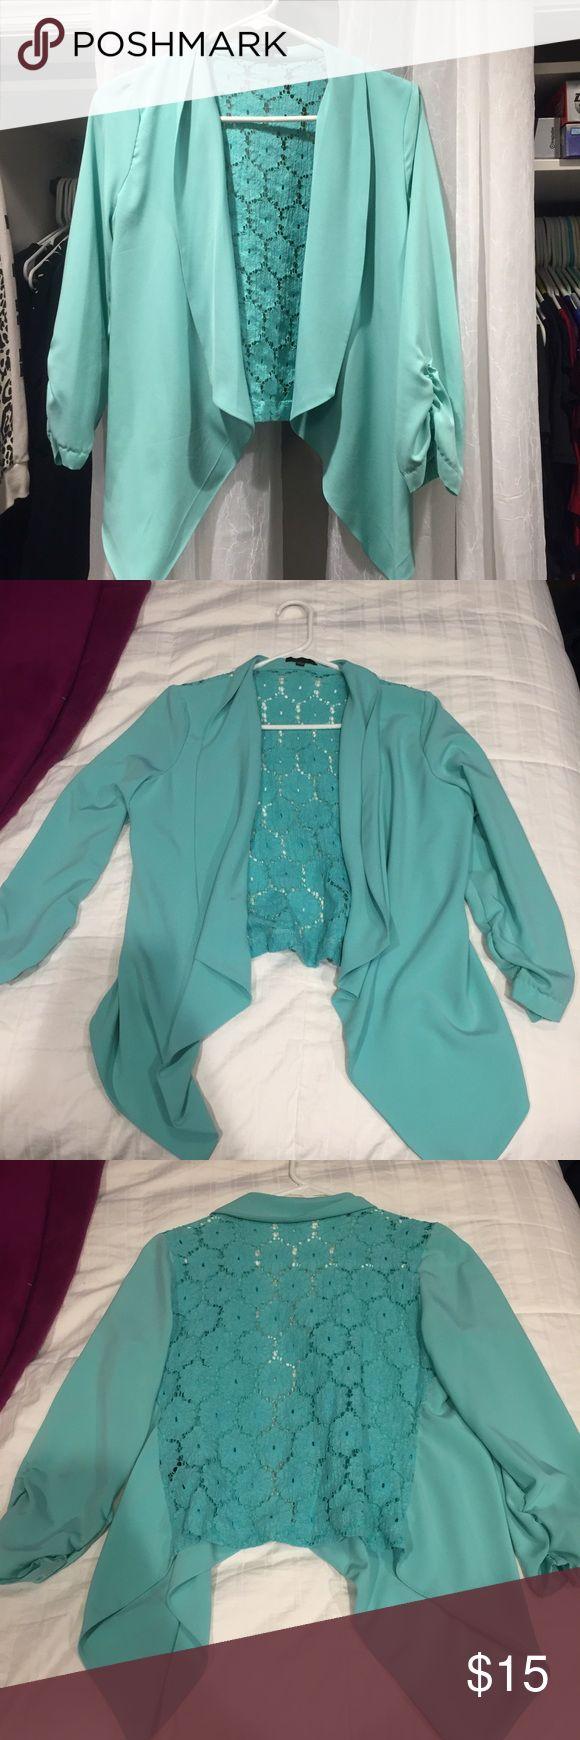 Brand new teal blue blazer with lace back Brand new without tags. Teal blue/mint green work blazer with a full lace back. Super thin and airy but still so cute. mine Jackets & Coats Blazers